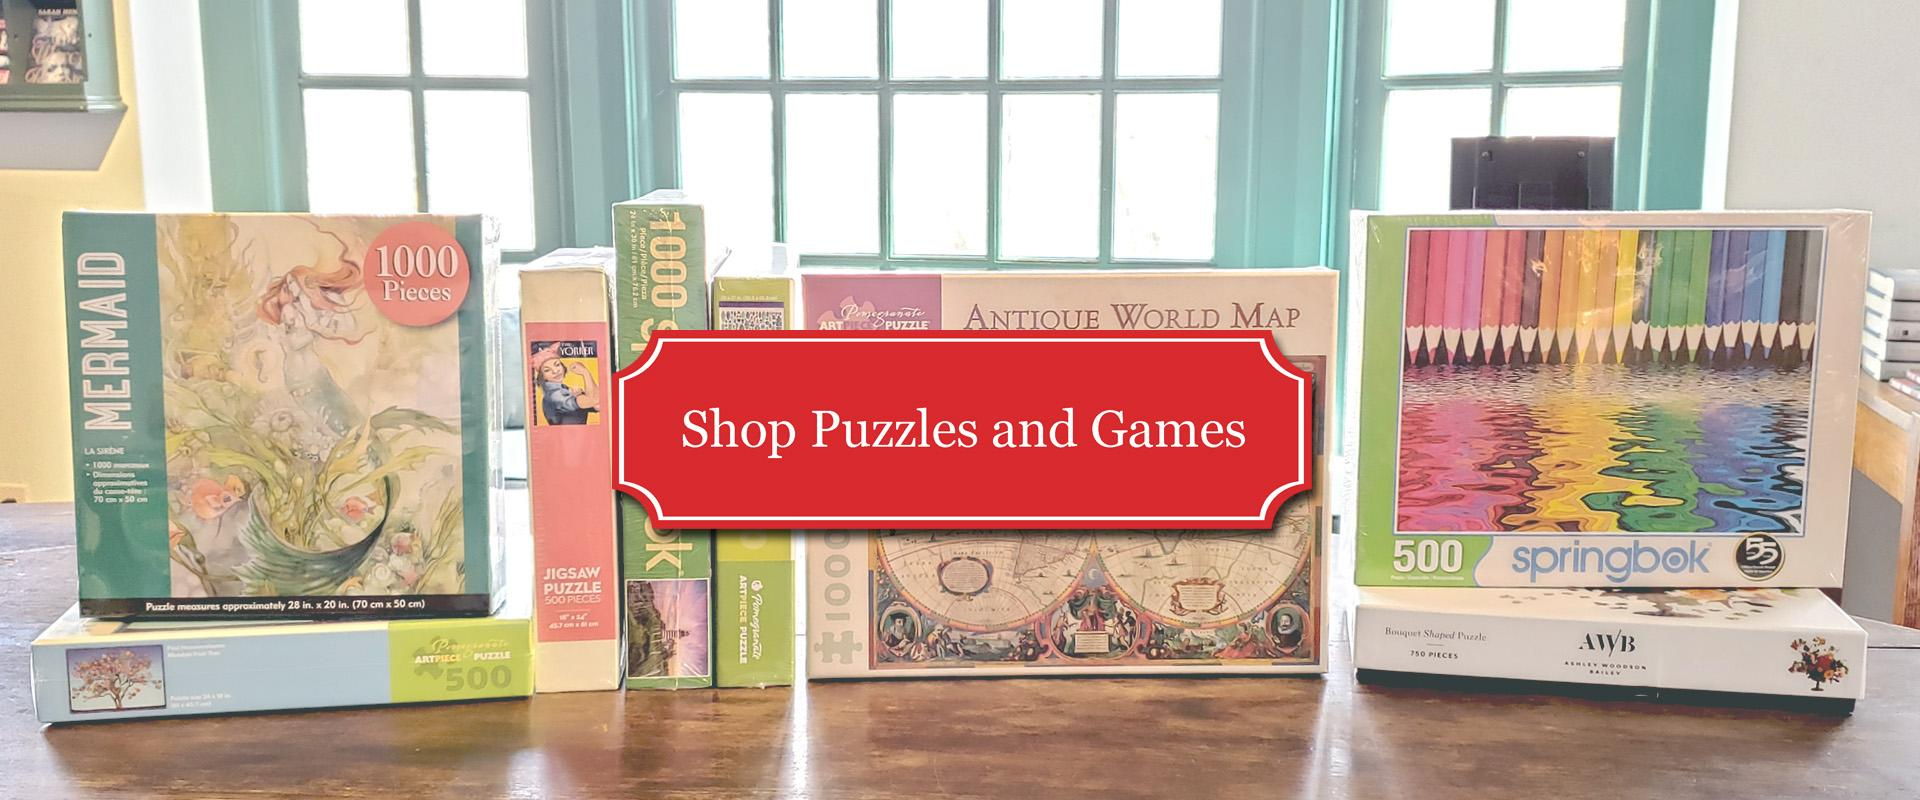 Shop Puzzles and Games